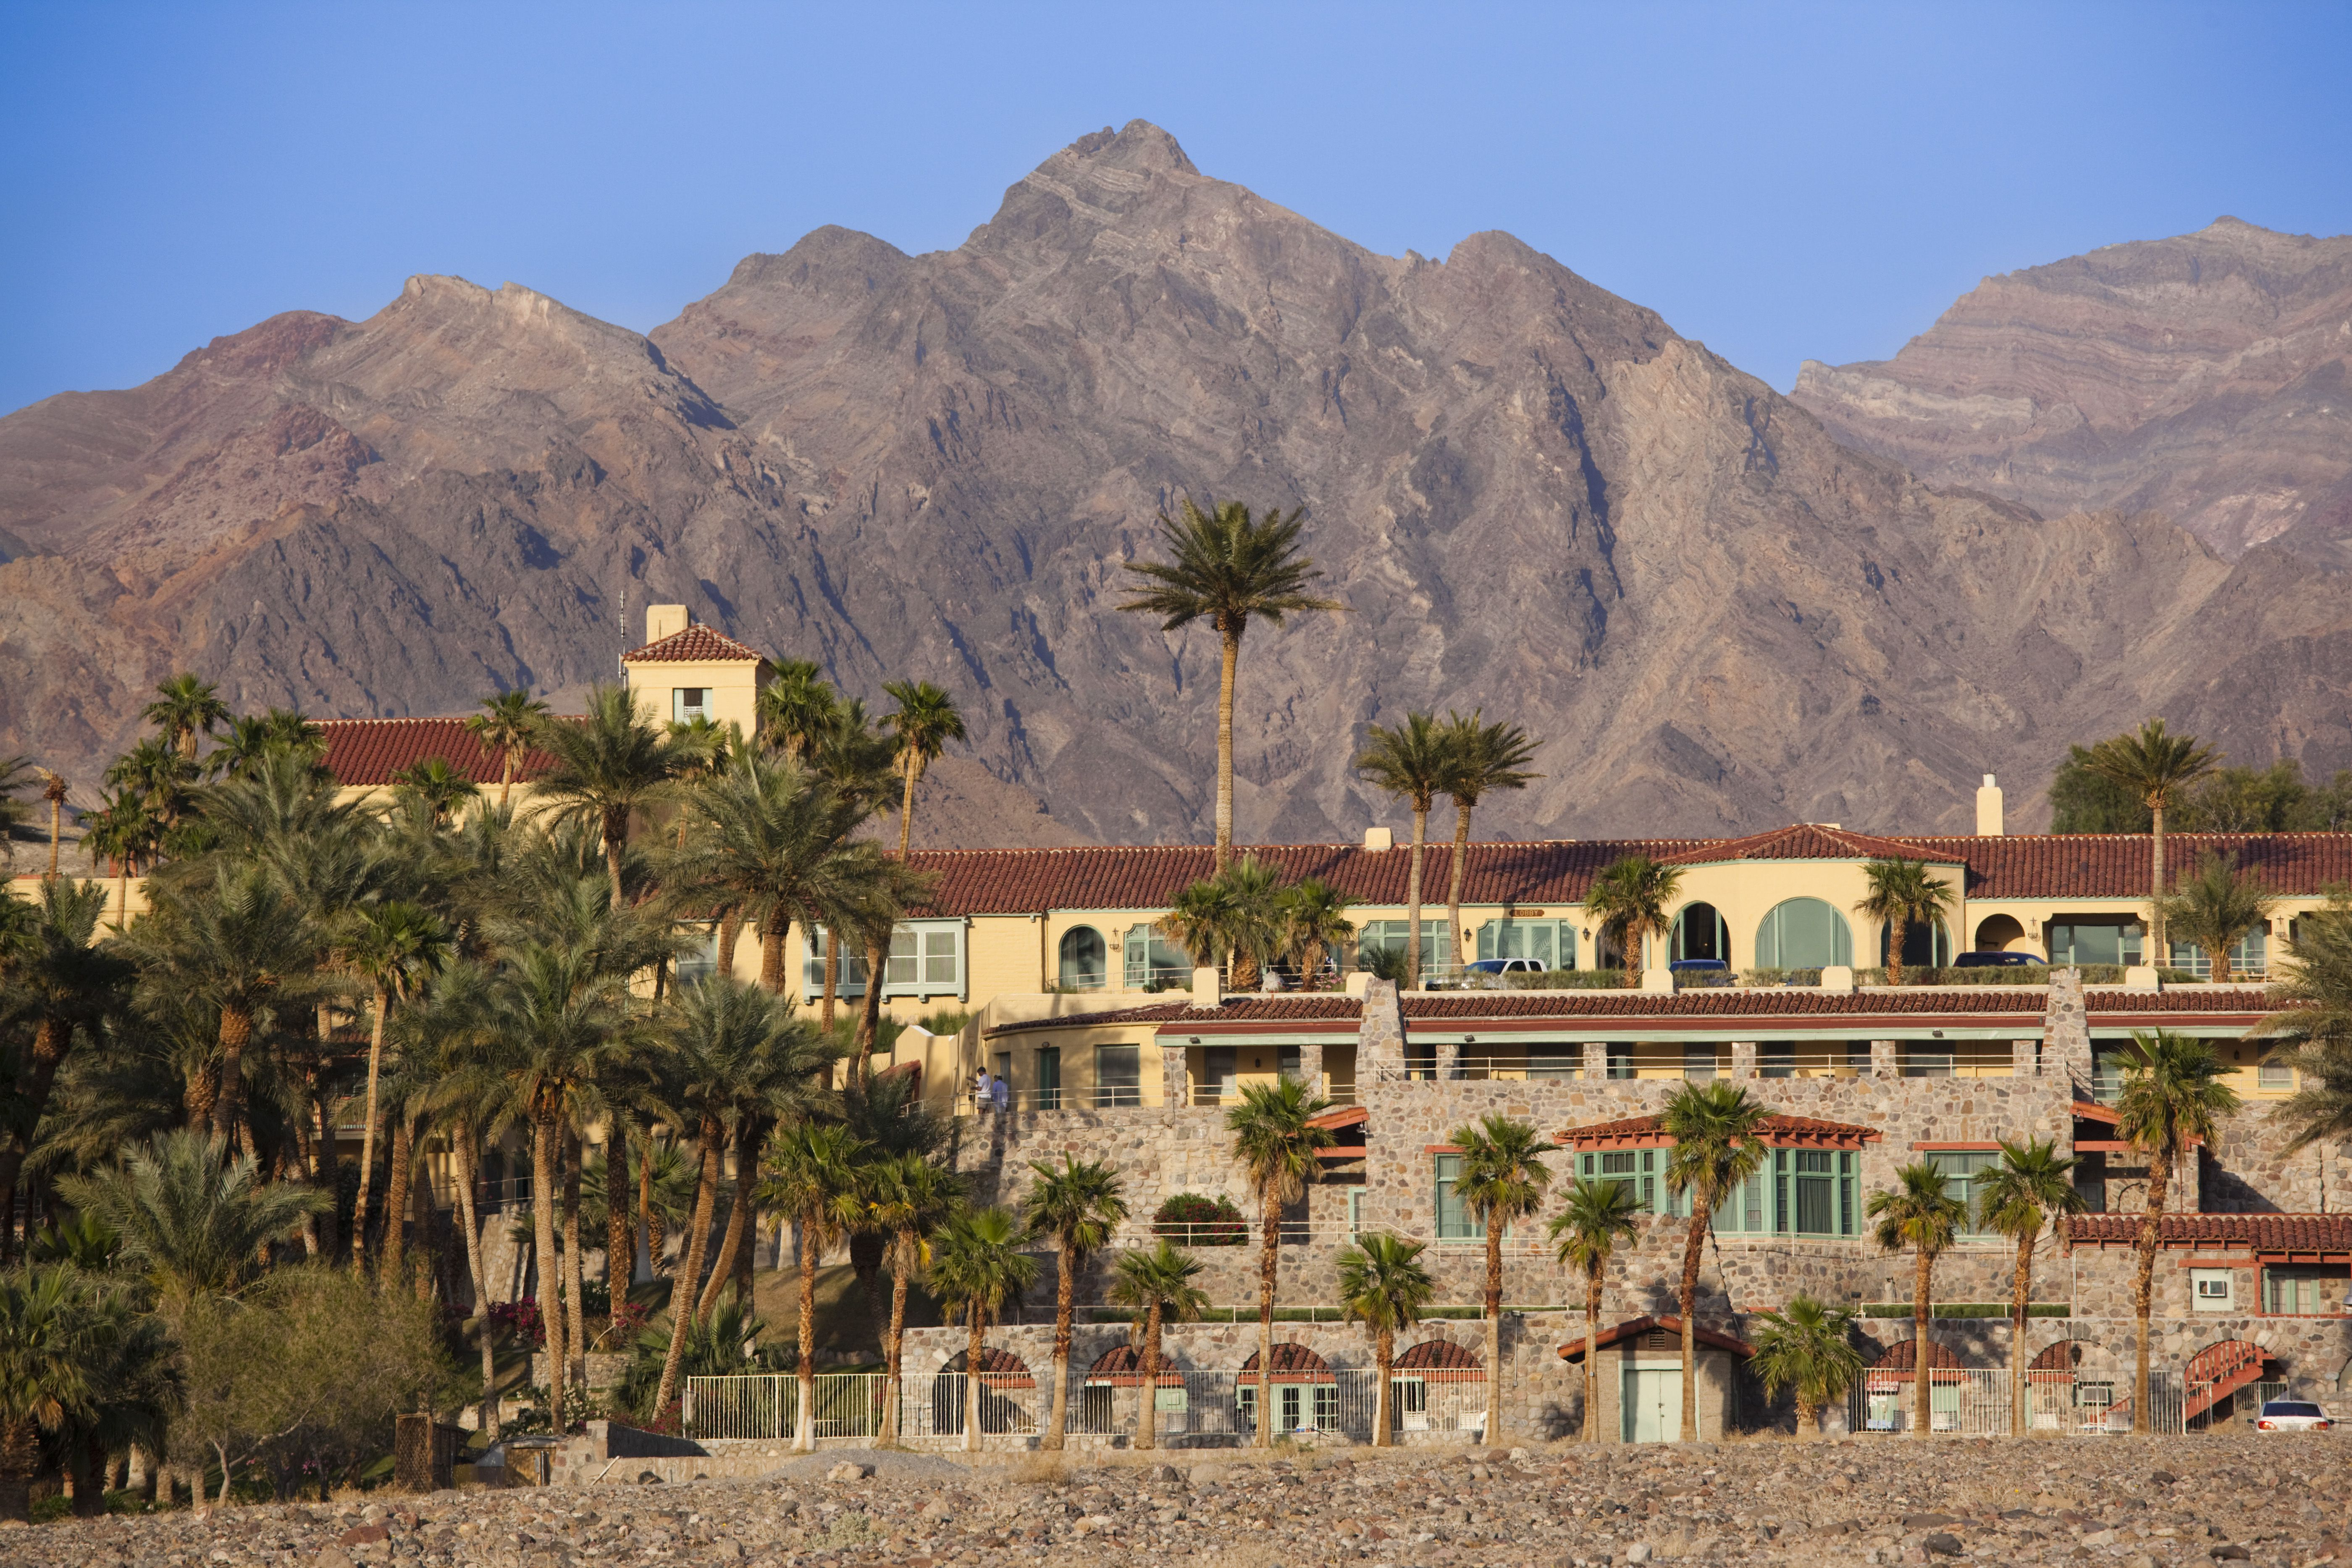 The Inn at Death Valley with the mountains in the background